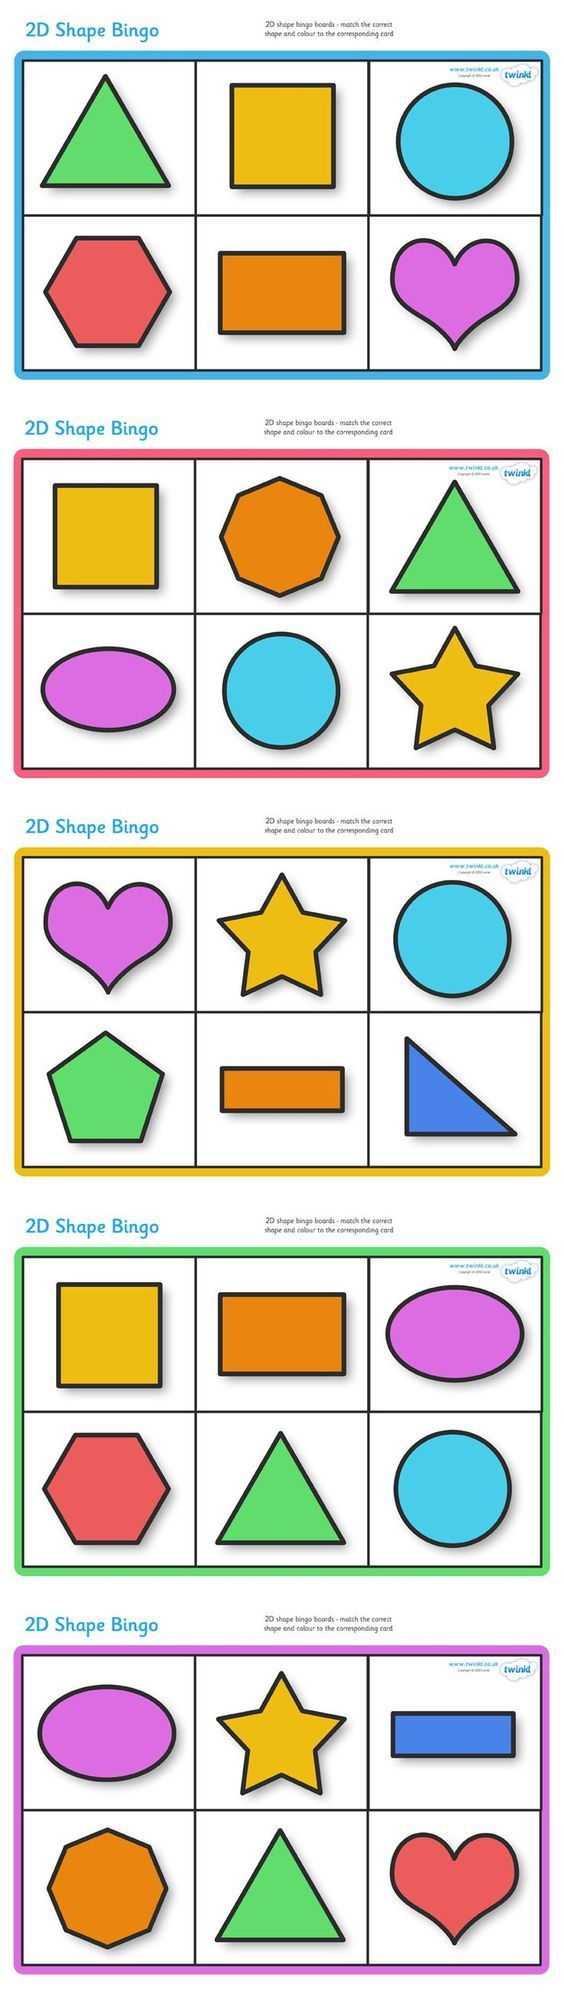 Twinkl Resources >> 2D Shape Bingo  >> Classroom printables for Pre-School, Kindergarten, Primary School and ... pinned with Pinvolve - pinvolve.co: